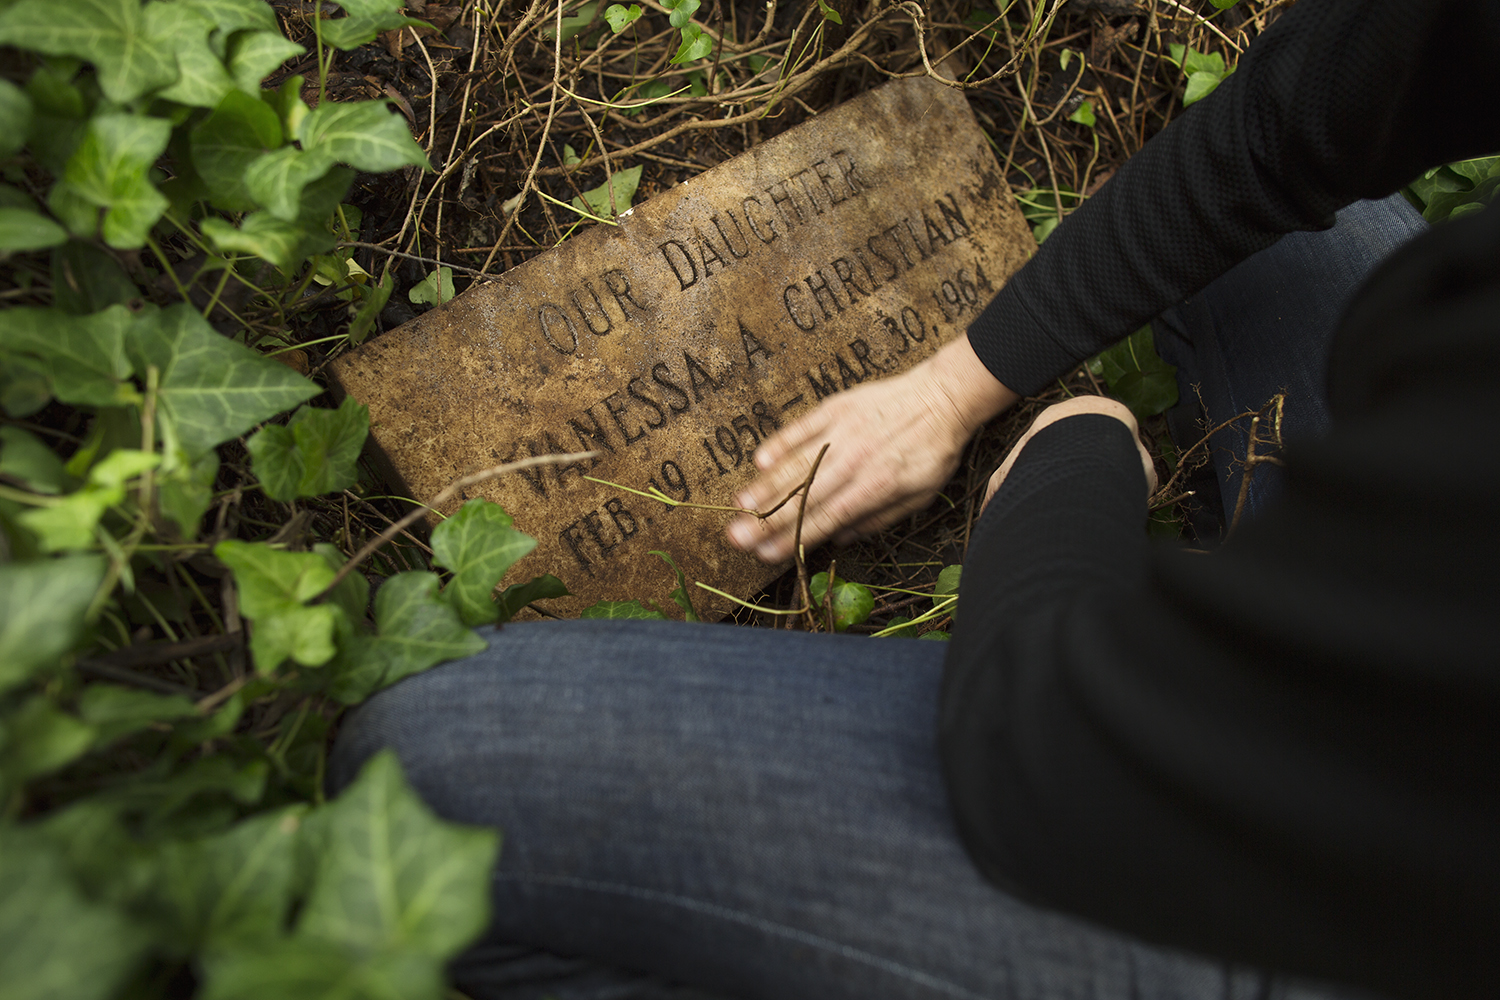 Erin wipes dirt from Vanessa Christian grave marker.East End Cemetery, Henrico County, Virginia, October 2015. Photo: ©BP